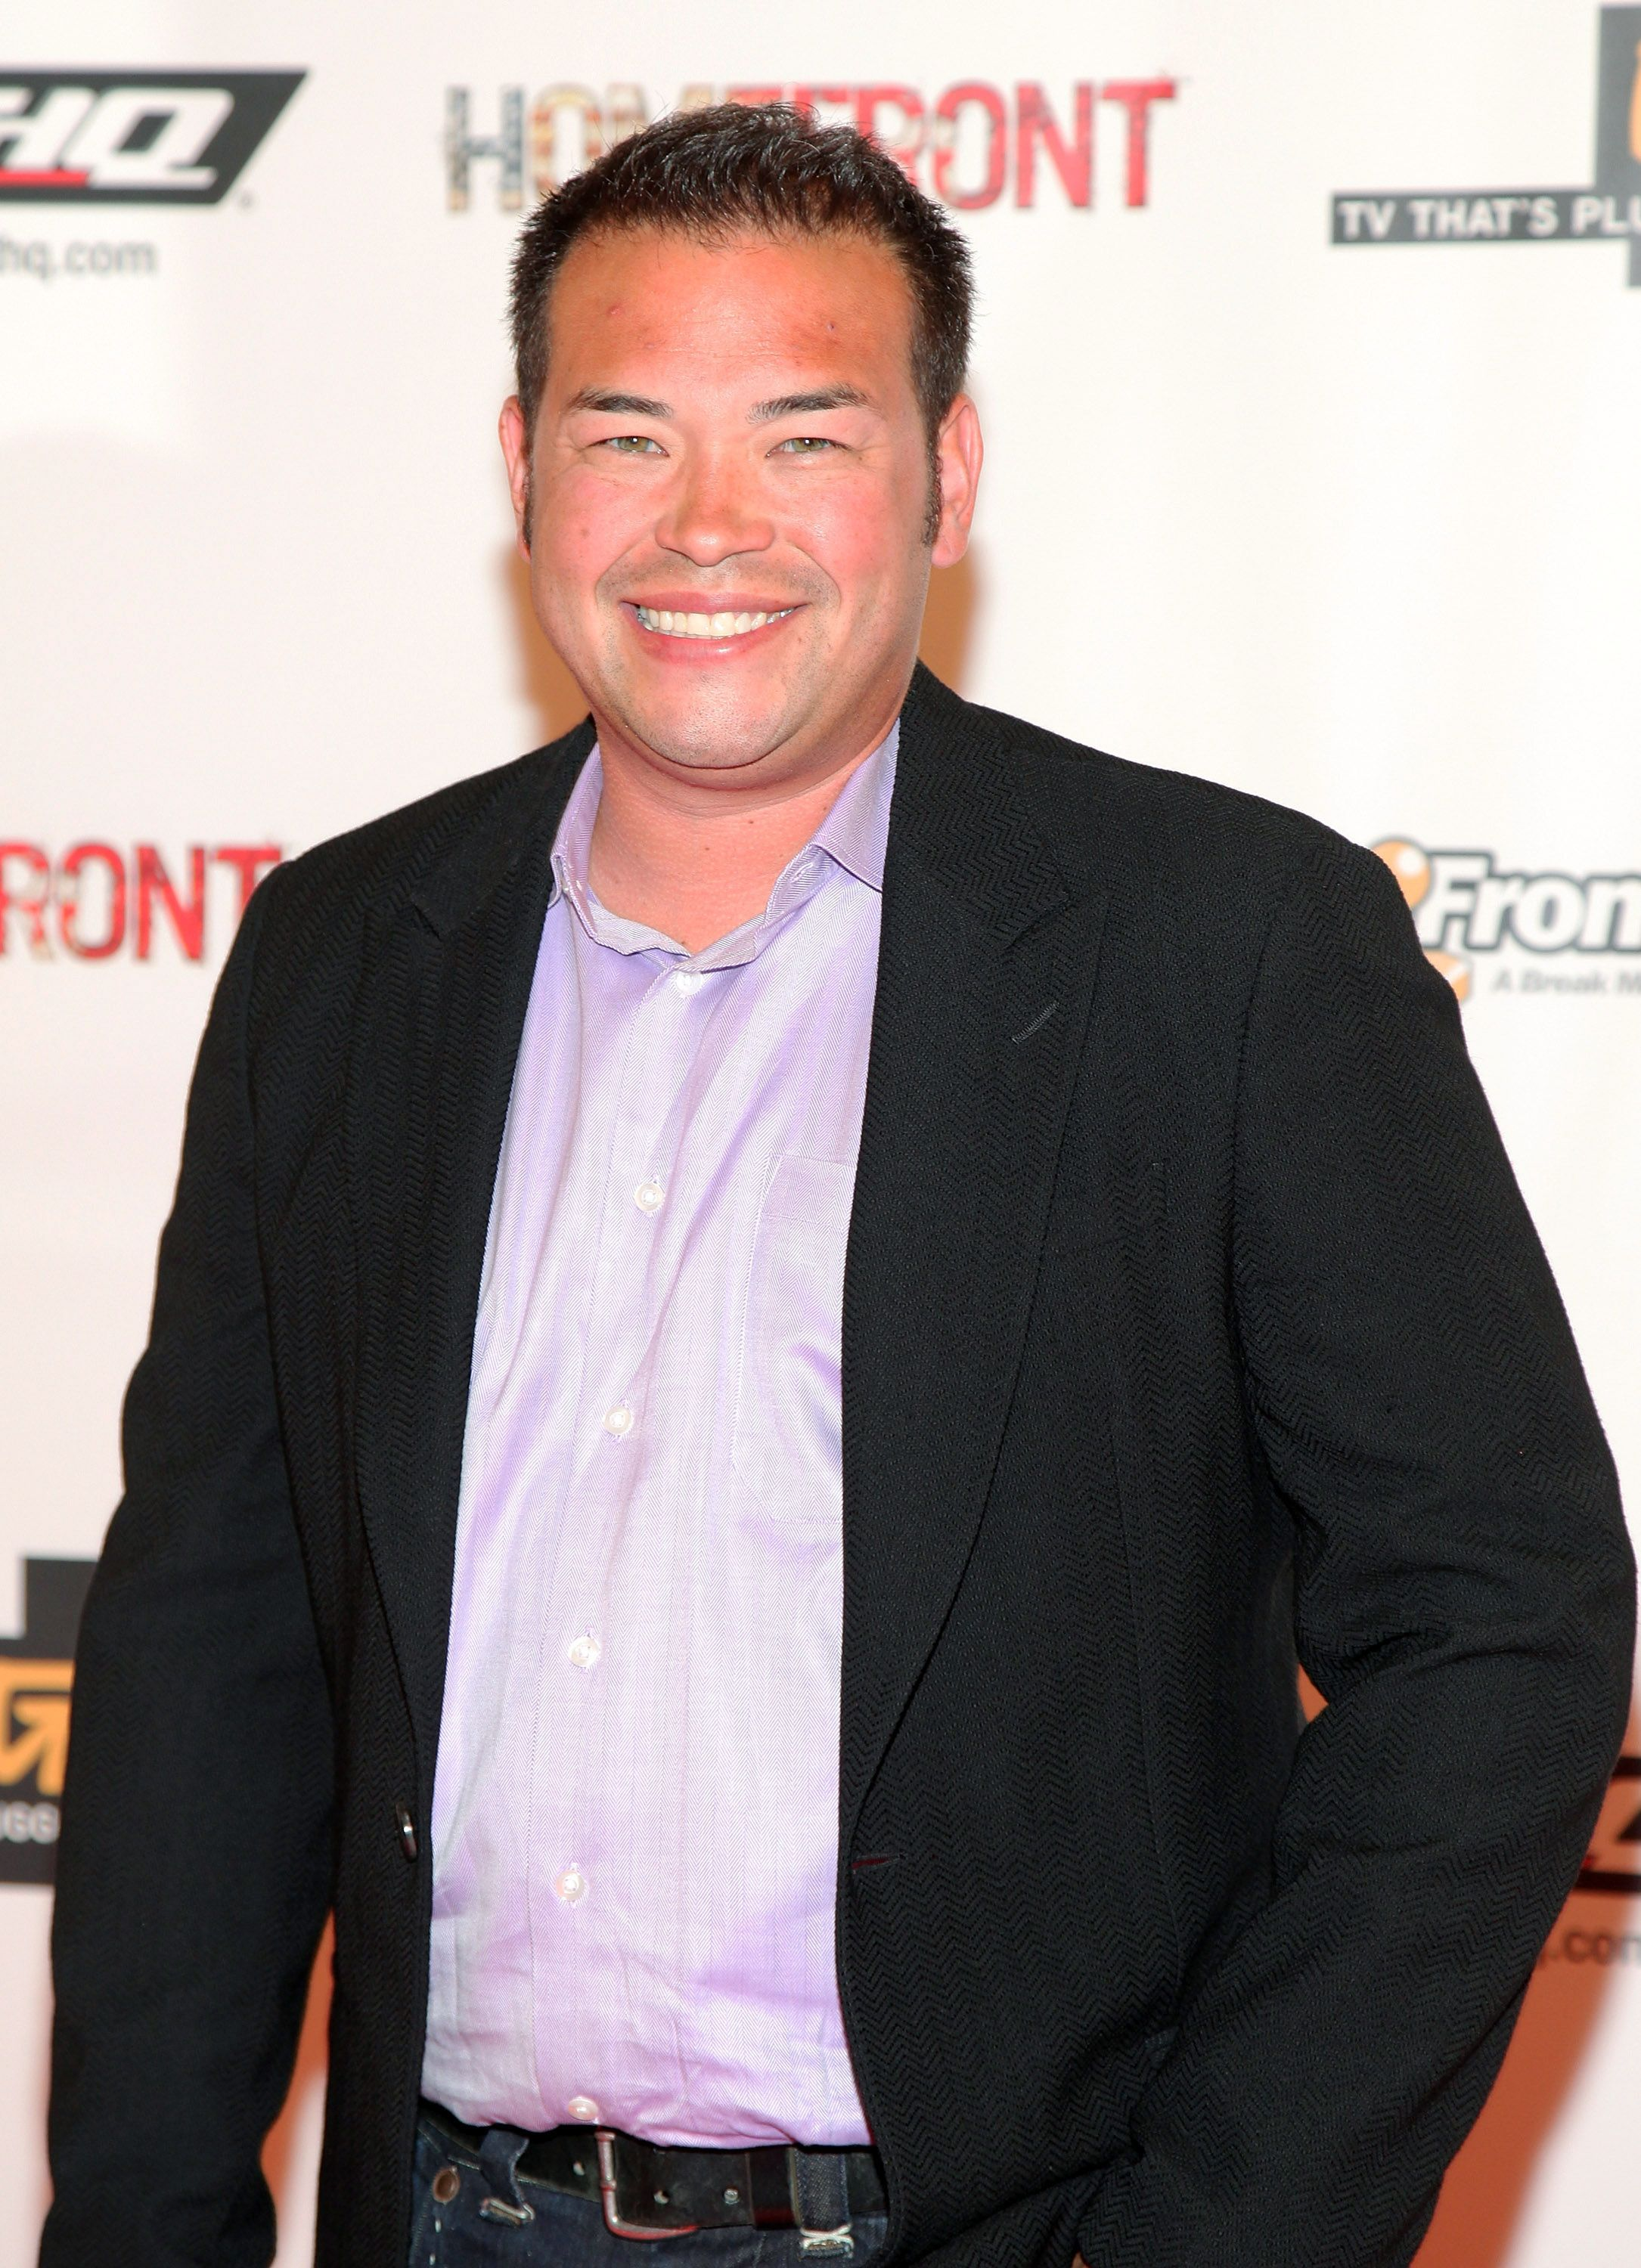 Jon Gosselin during the THQ's E3 'Take No Prisoners' event at The Standard Hotel Downtown on June 16, 2010. | Photo: Getty Images